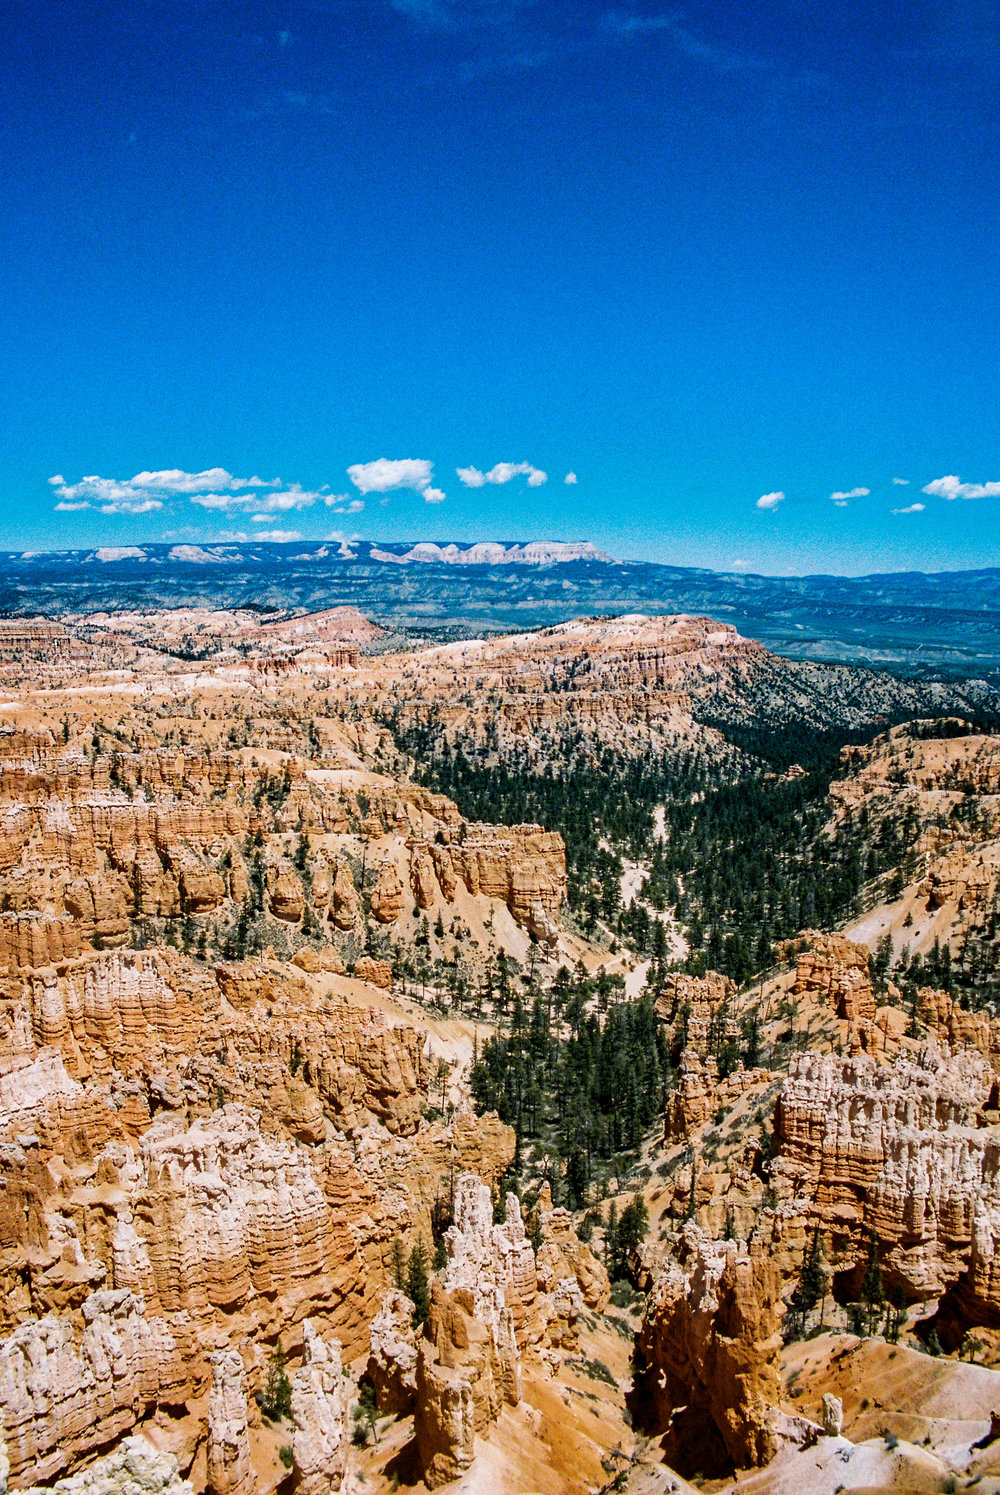 A 35mm film shot of Bryce Amphitheater from the Bryce Point Overlook